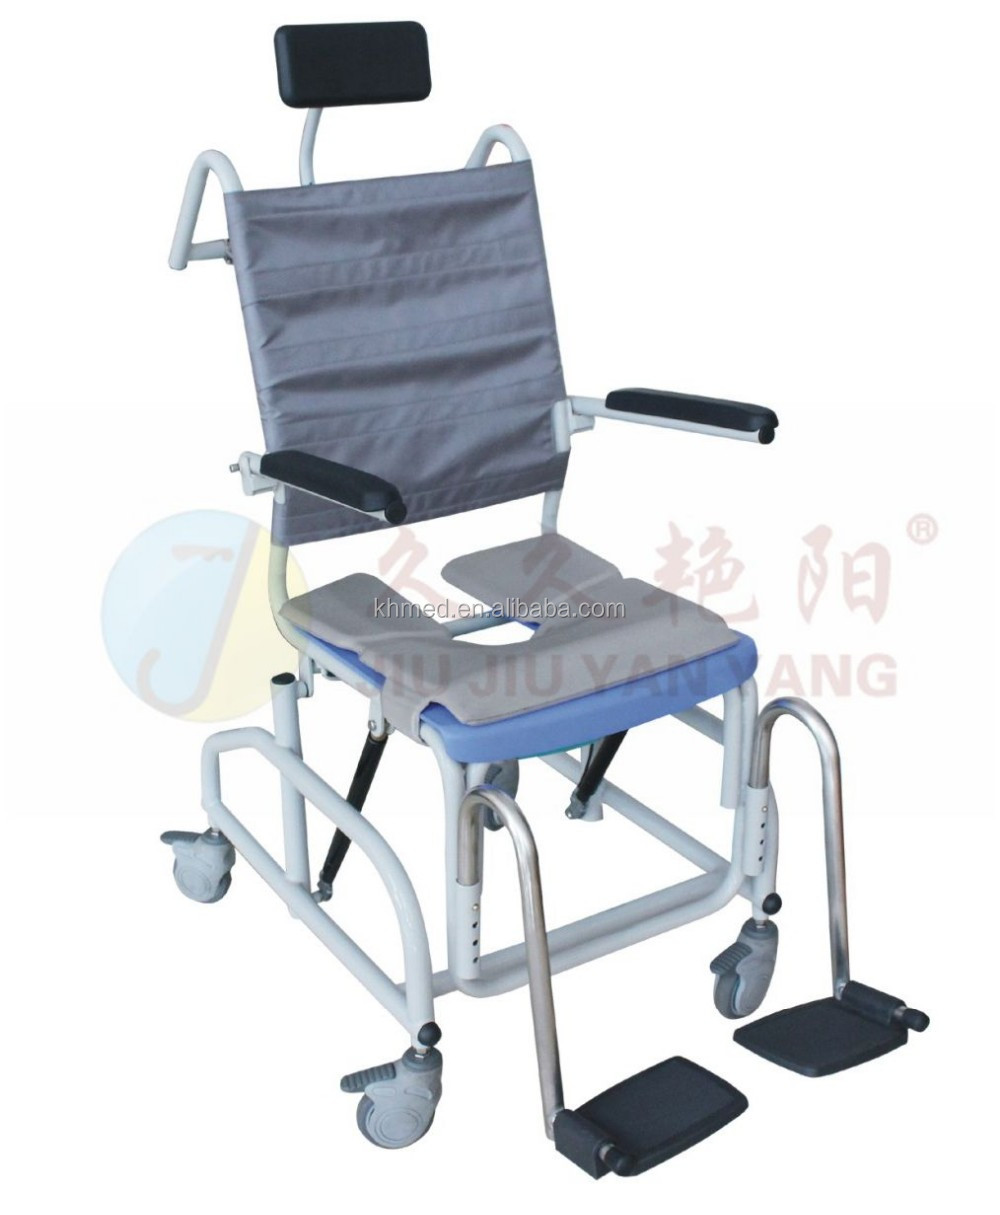 Jy-xzc-01 Multifunction Toilet Shower Chair With Wheels For Disabled ...